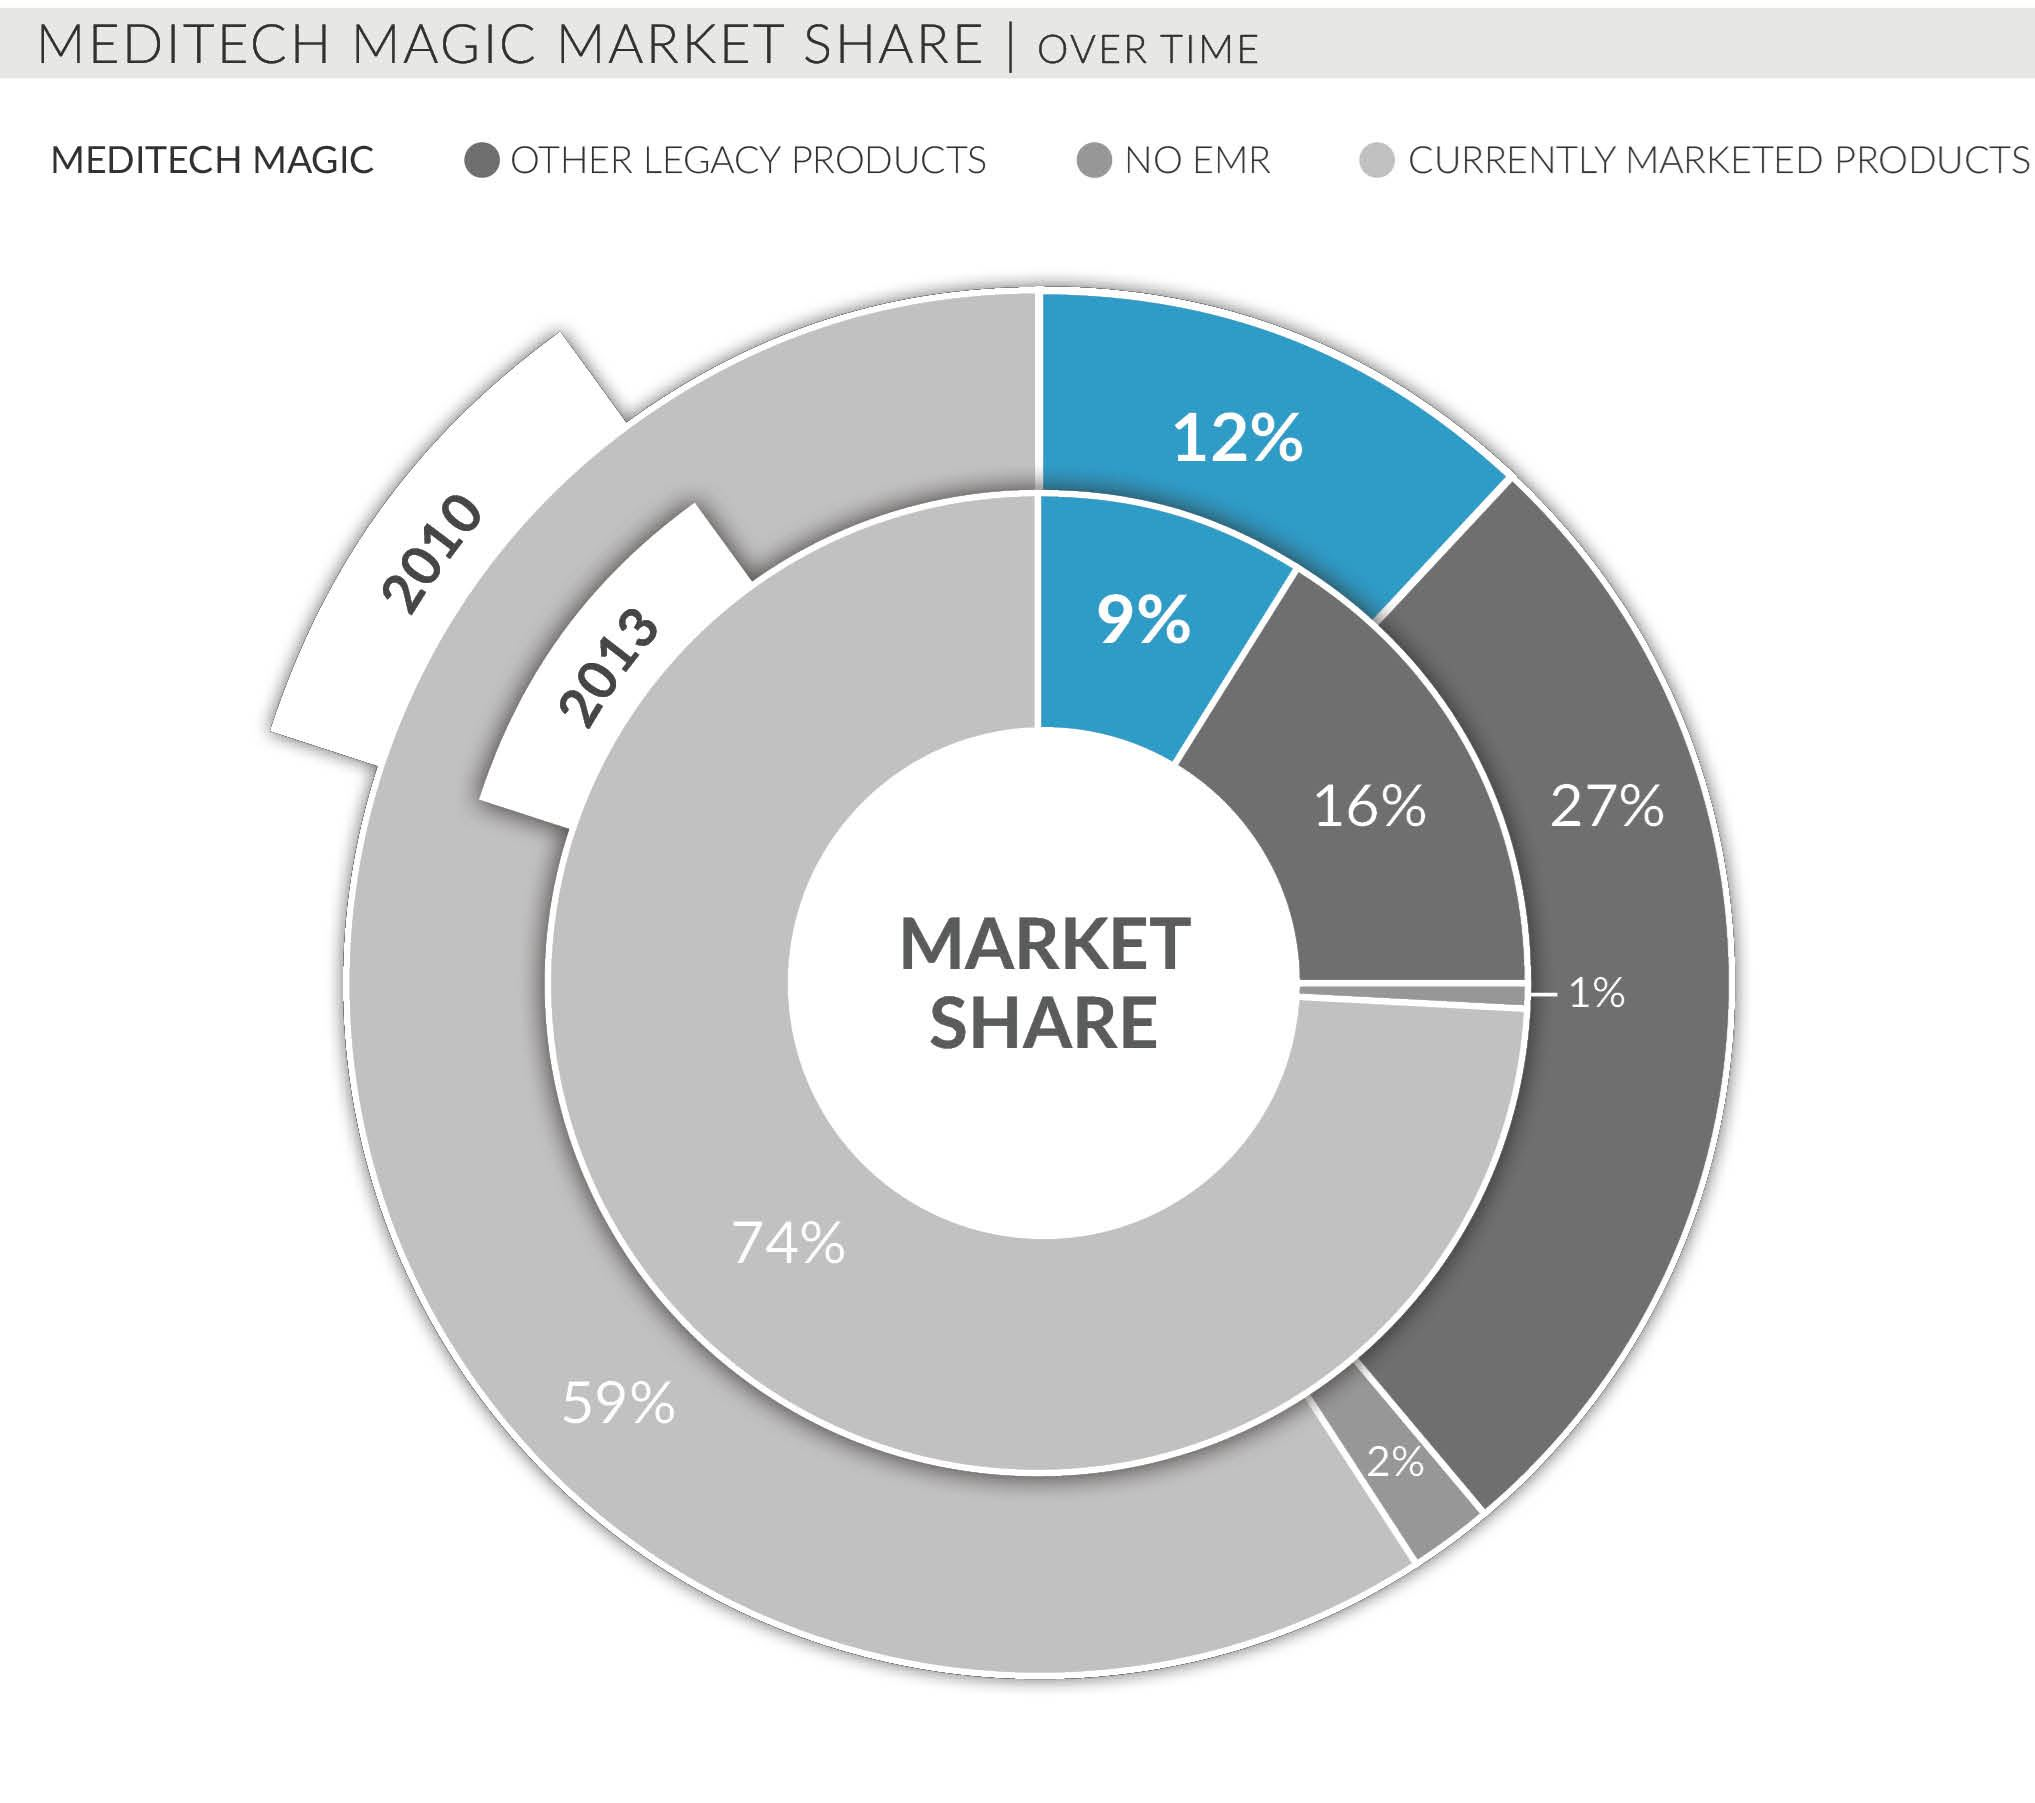 meditech magic market share over time